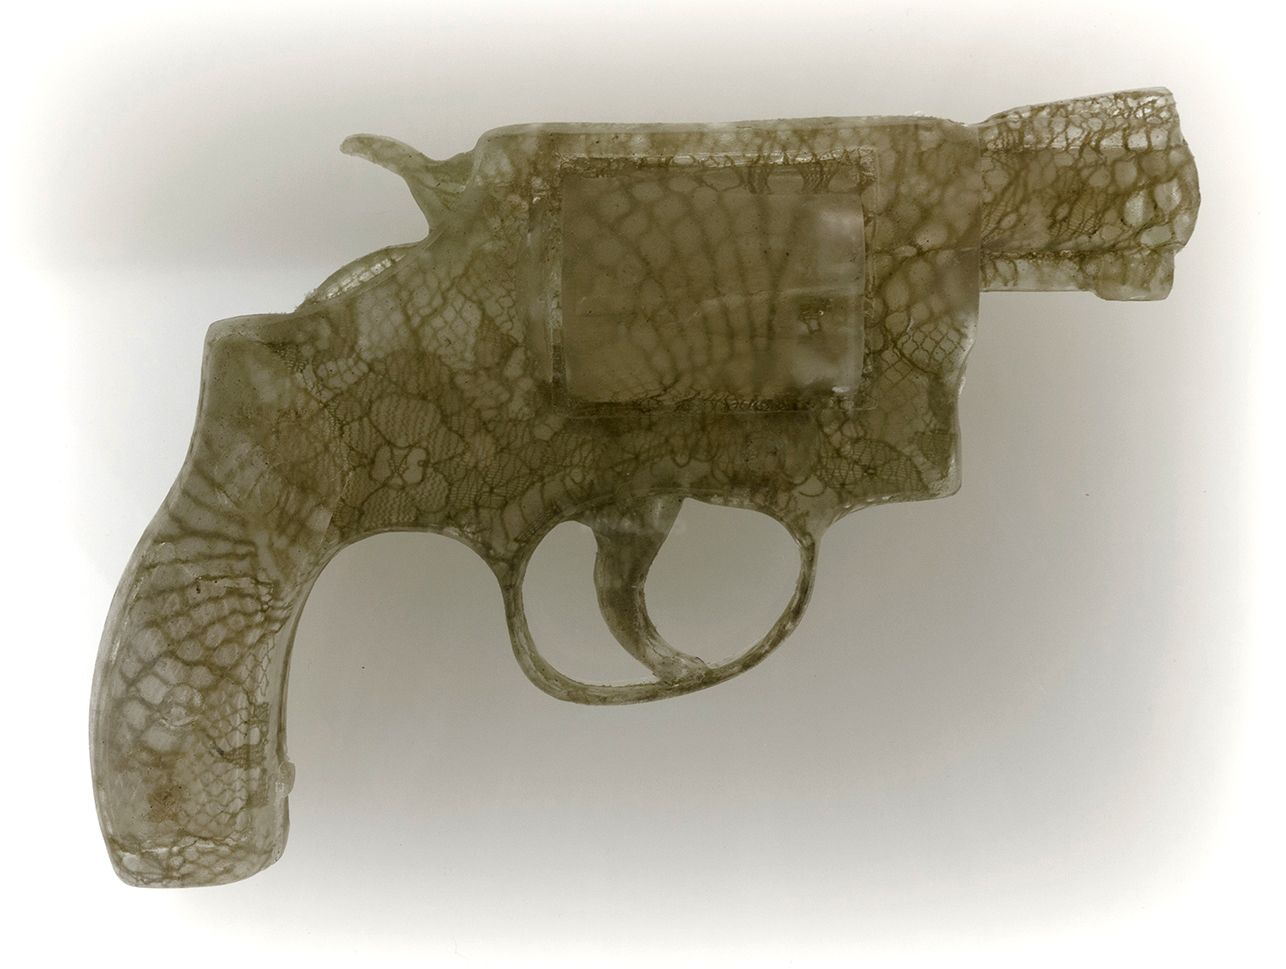 Nikki Luna Quince (7), 2016 Cast resin and lace handgun in lightbox